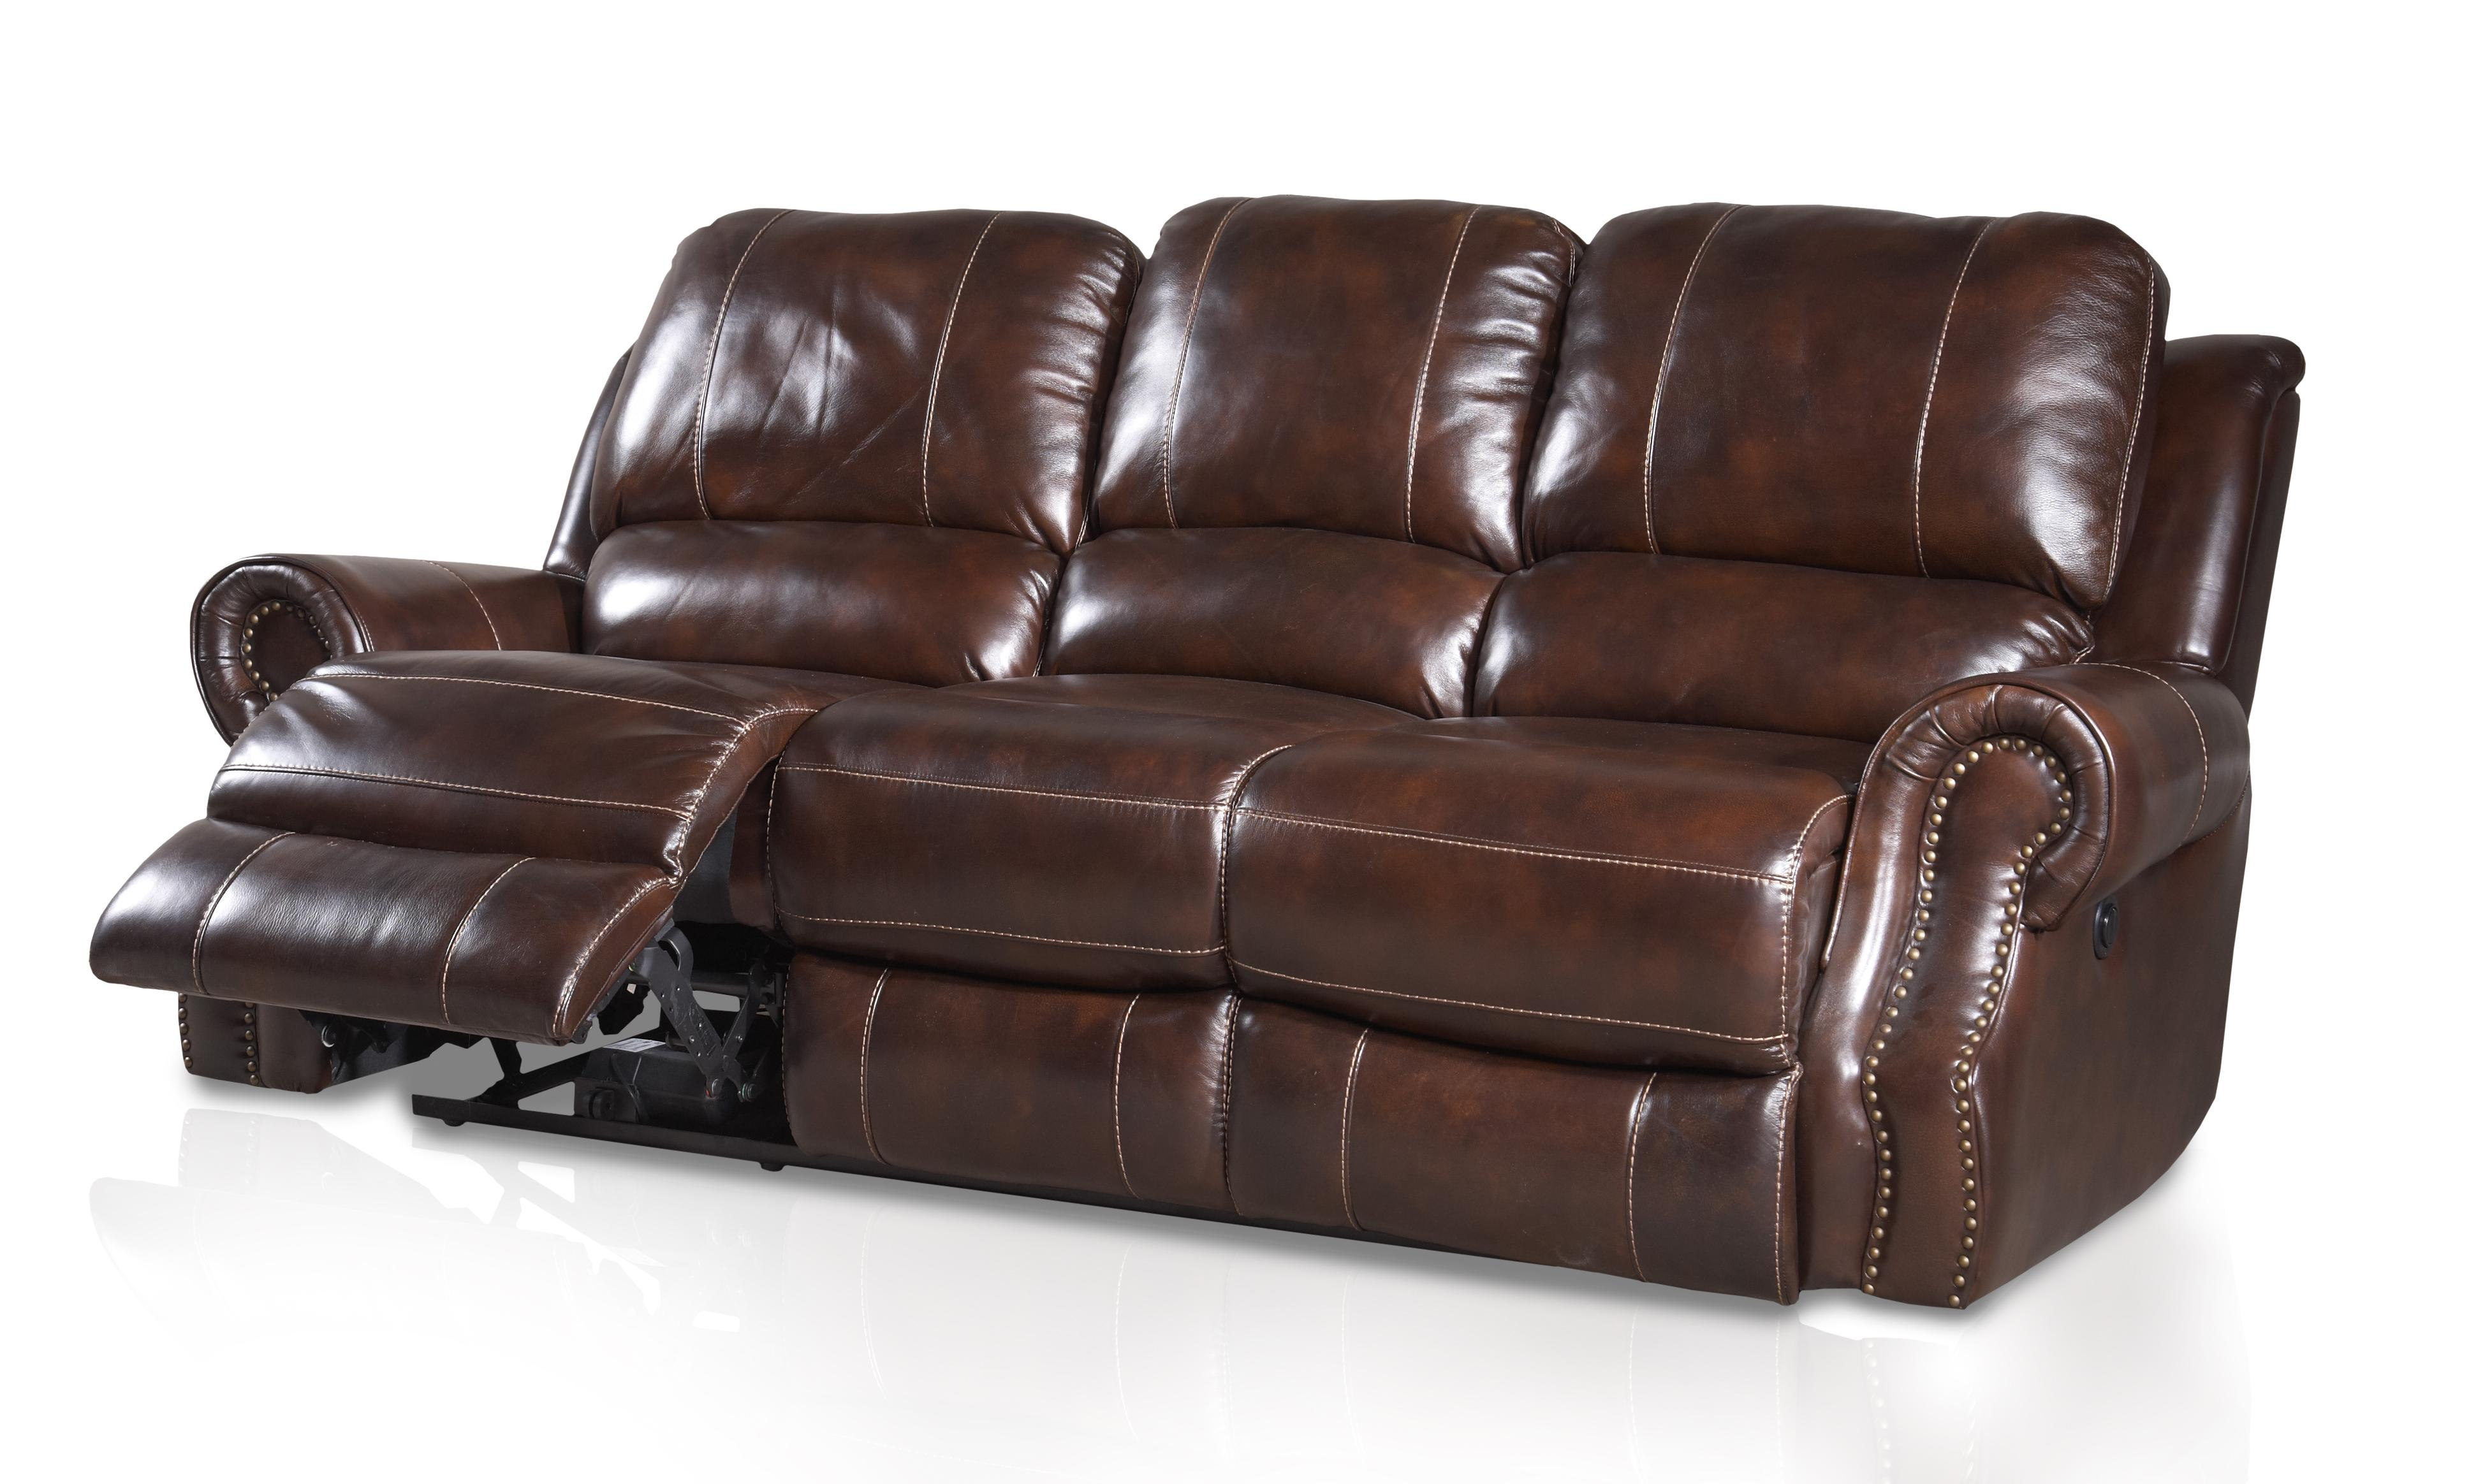 3-Seater Reclining Sofa